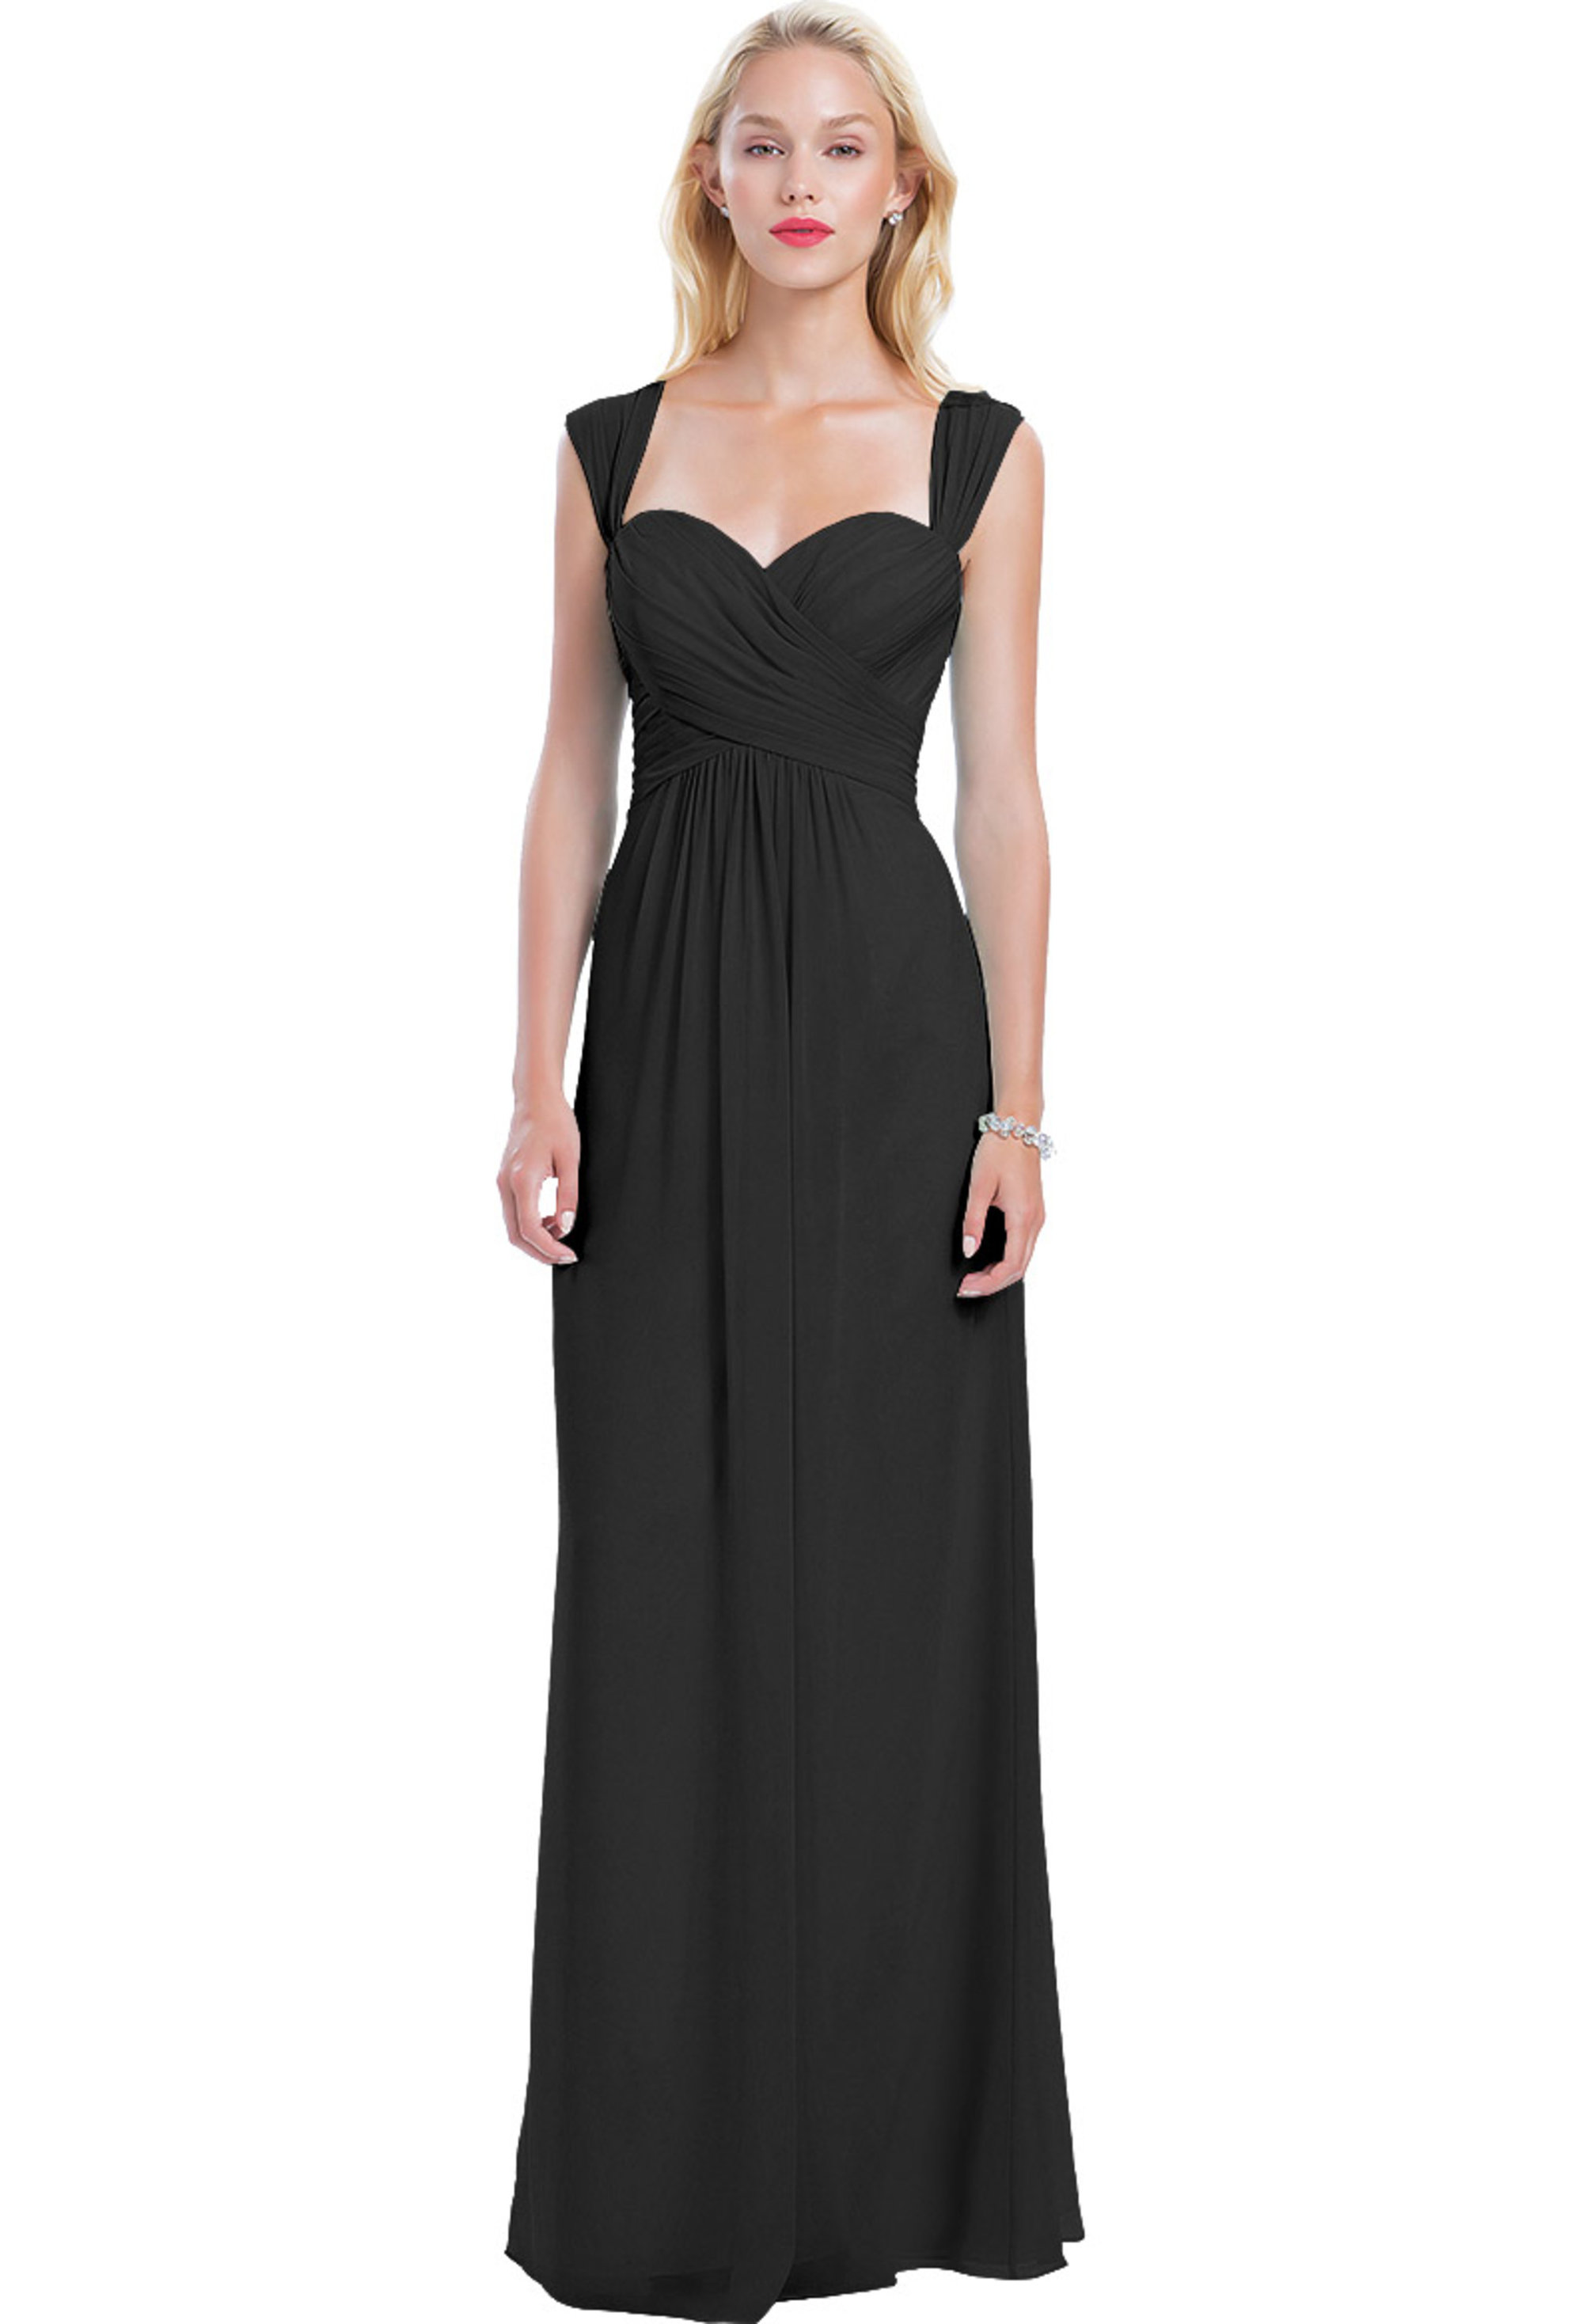 Bill Levkoff BLACK Chiffon Sweetheart A-line gown, $210.00 Front